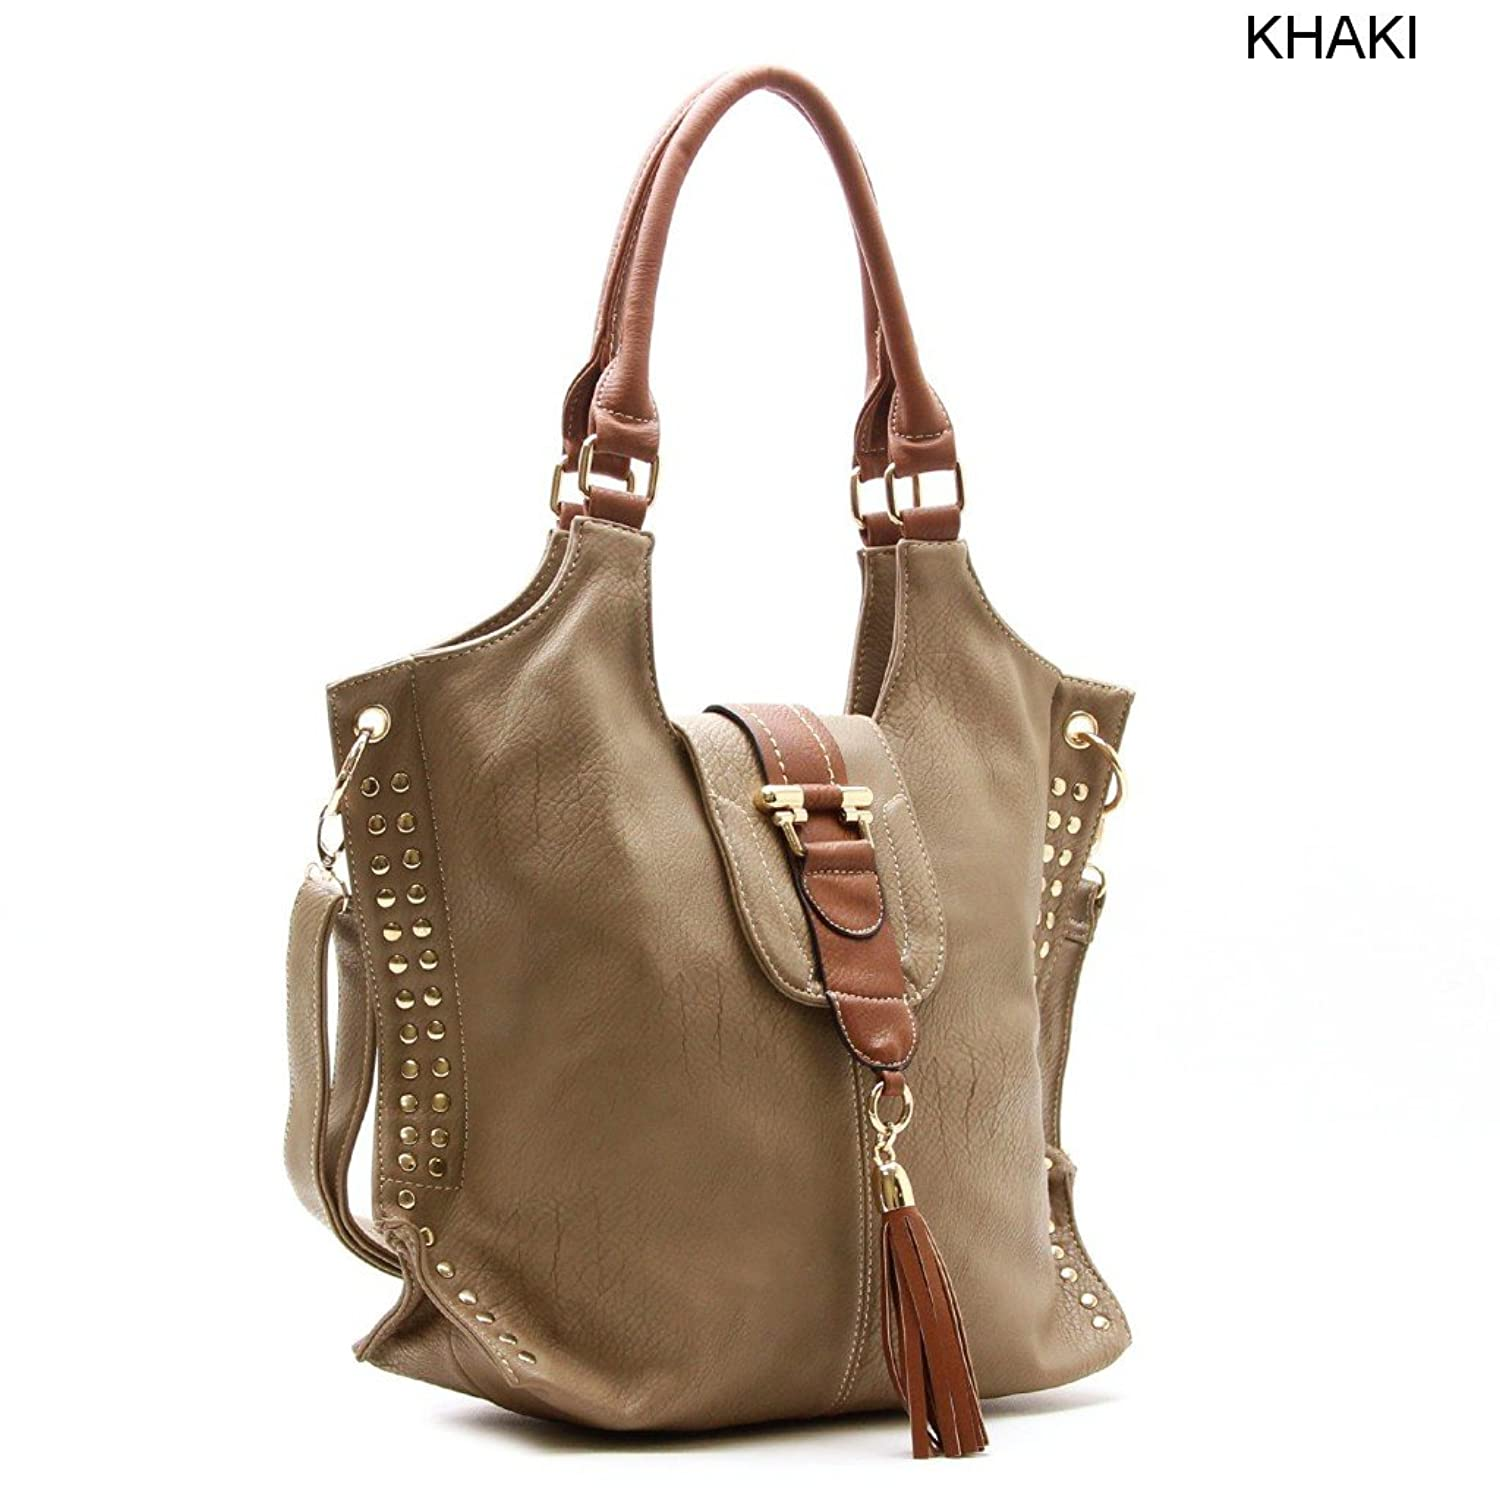 Royal LIZZY Couture Filles Scout Shoulder Tote